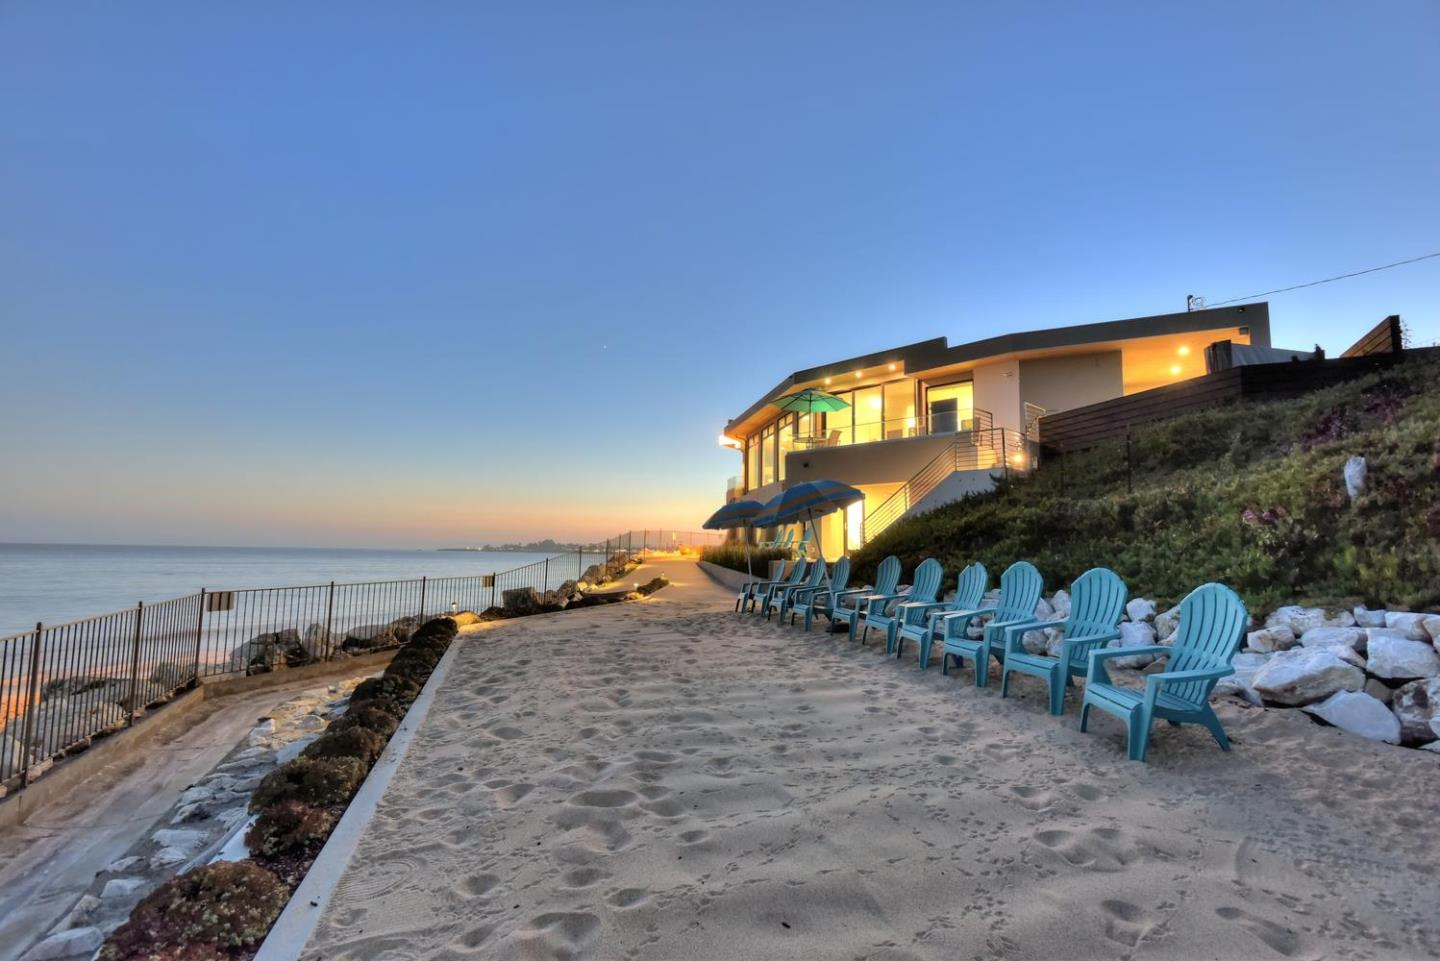 One of a Kind Contemporary Oceanfront Luxury Home on over 500 linear feet of beach front w/breathtaking 240 degree views from expansive floor to ceiling windows. This home has been completely remodeled & is truly one of the finest beachfront properties in all of Santa Cruz! Situated on ¾ acre private point location with remarkable beach & lighthouse views from nearly every room! The spacious floor plan offers something for everyone -  an incredible gourmet kitchen, an atrium style game room, connecting to an outdoor BBQ area, & relaxing oceanfront hot tub. Each bedroom has an attached bathroom, along with surf & sand views! The suite downstairs has its own private entrance w/ 2nd kitchen, LR, bedroom & bathroom. Outside, your own private sandy beach area. A Locked gate conveniently allows easy access to the surf & sand of the public beach. Unbeatable location! The harbor fun is just a beach stroll away. Enjoy all that Santa Cruz has to offer, in the most amazing home in Santa Cruz!